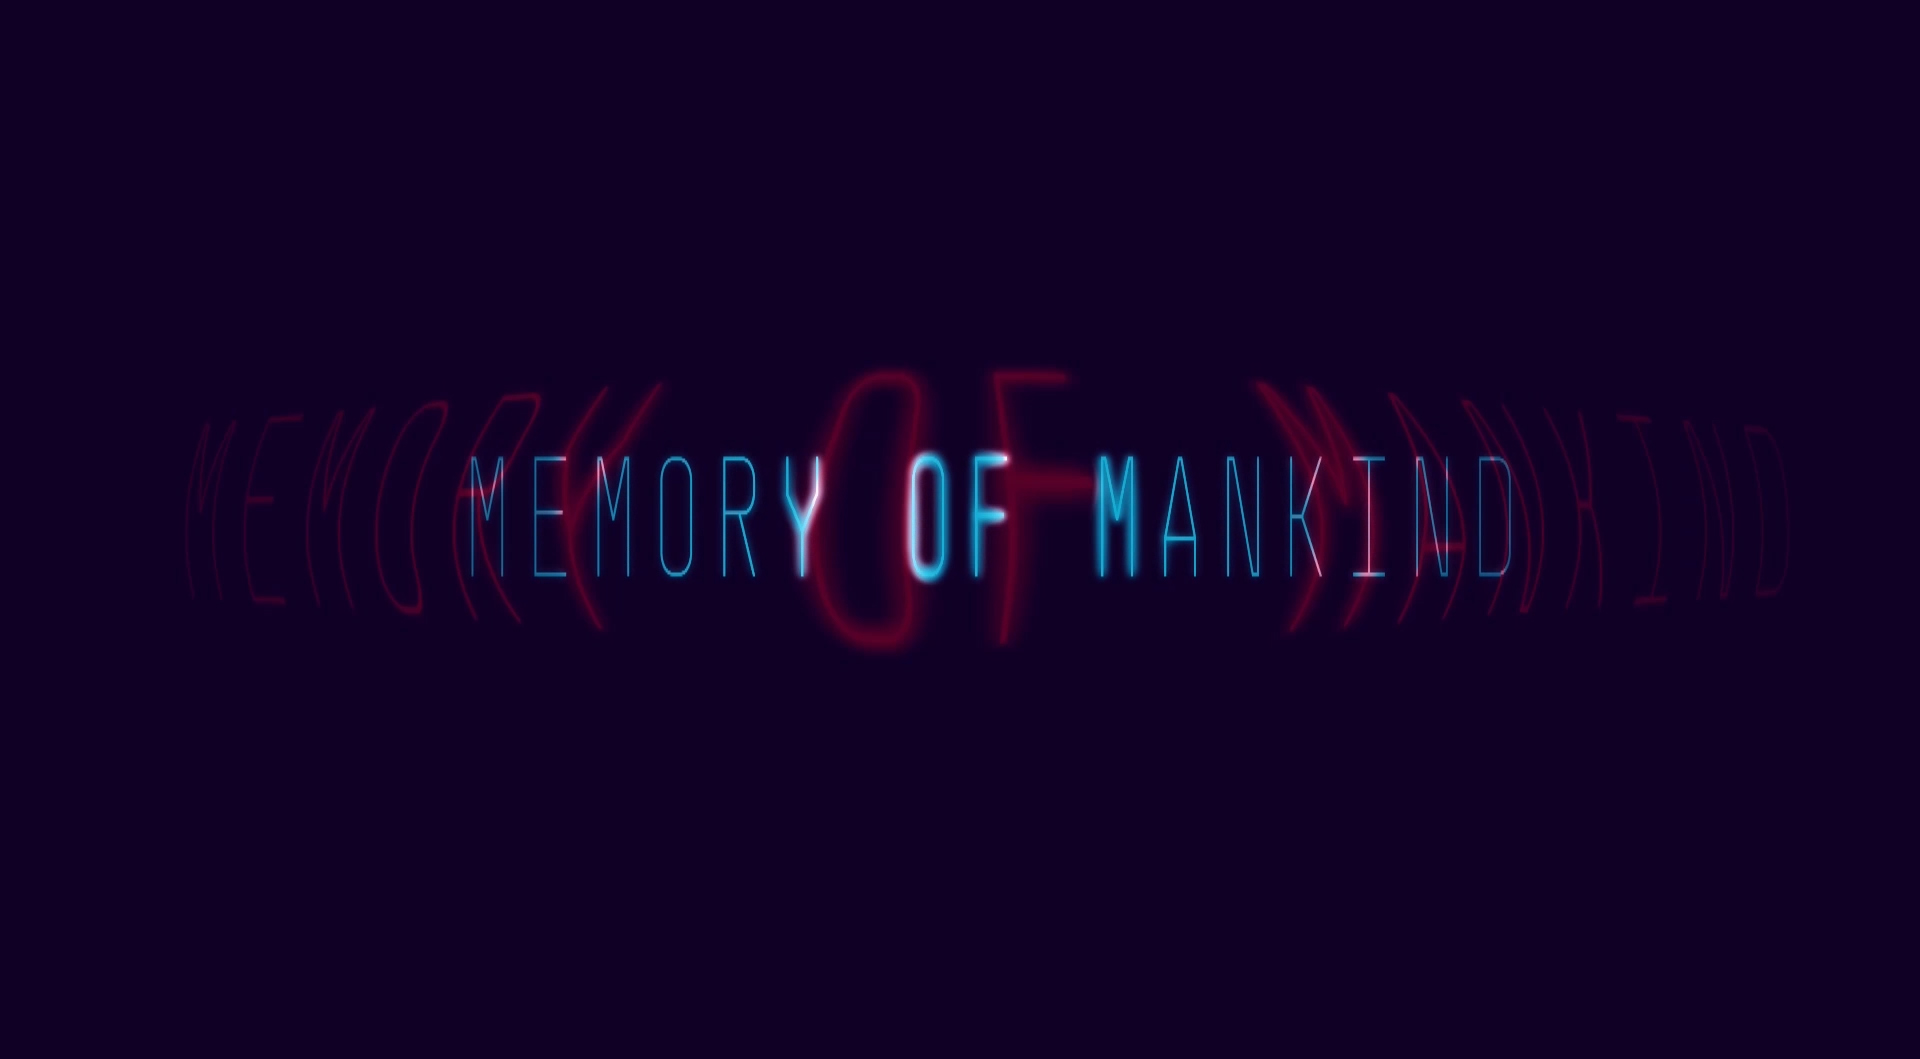 MemoryOfMankind_title